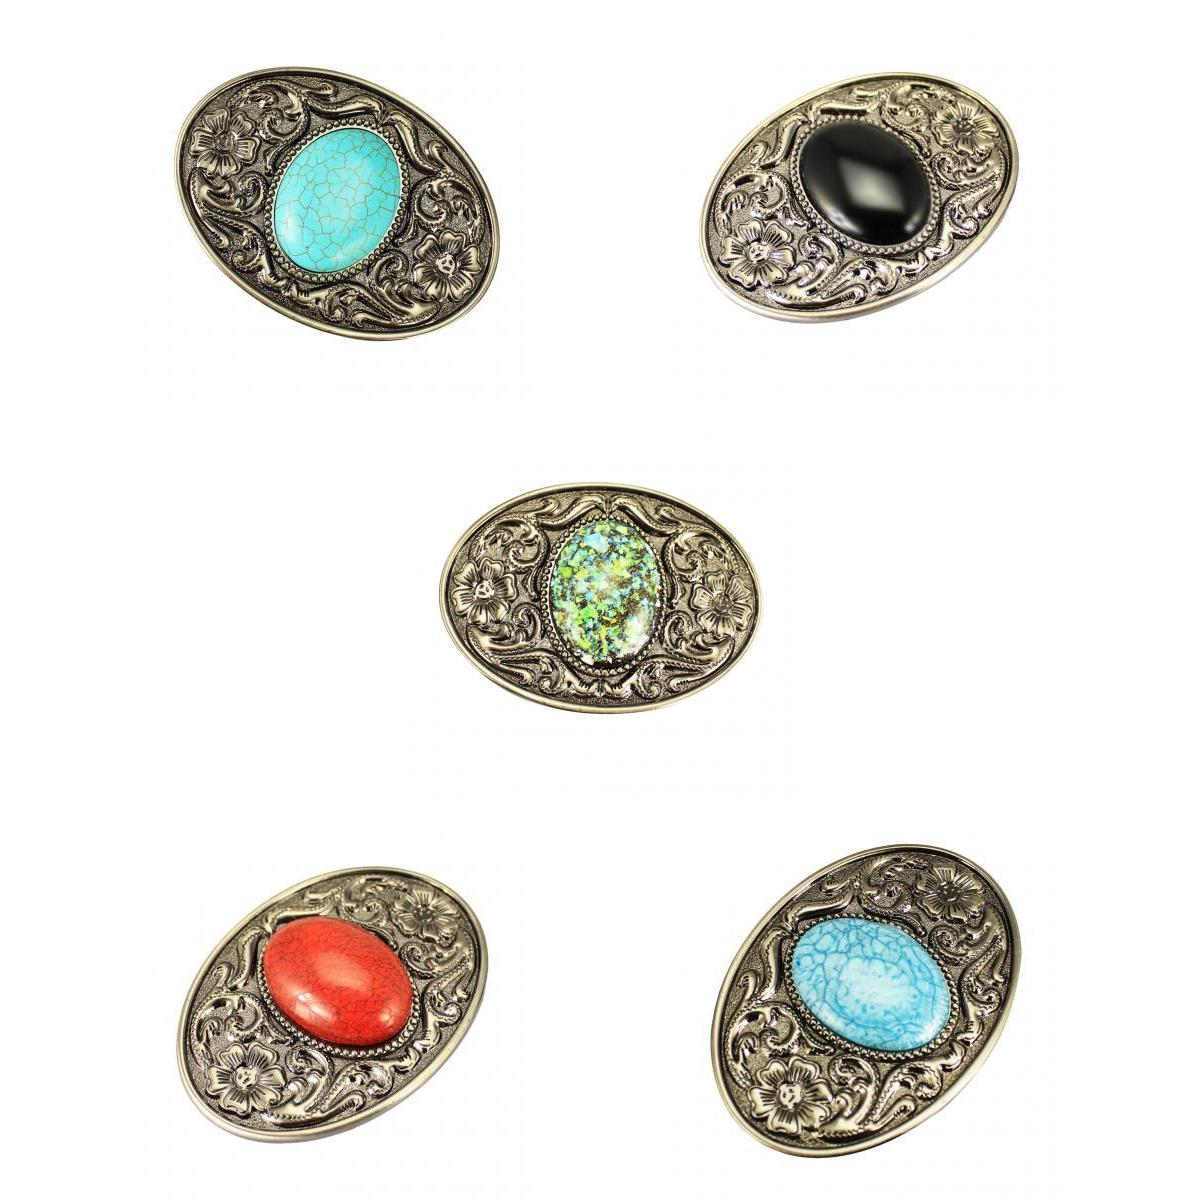 5PCS Bohemian Style Western Cowboy Belt Buckle Men Women DIY Accessories Classic Bohemian Colorful Beads Turquoise Belt Buckle